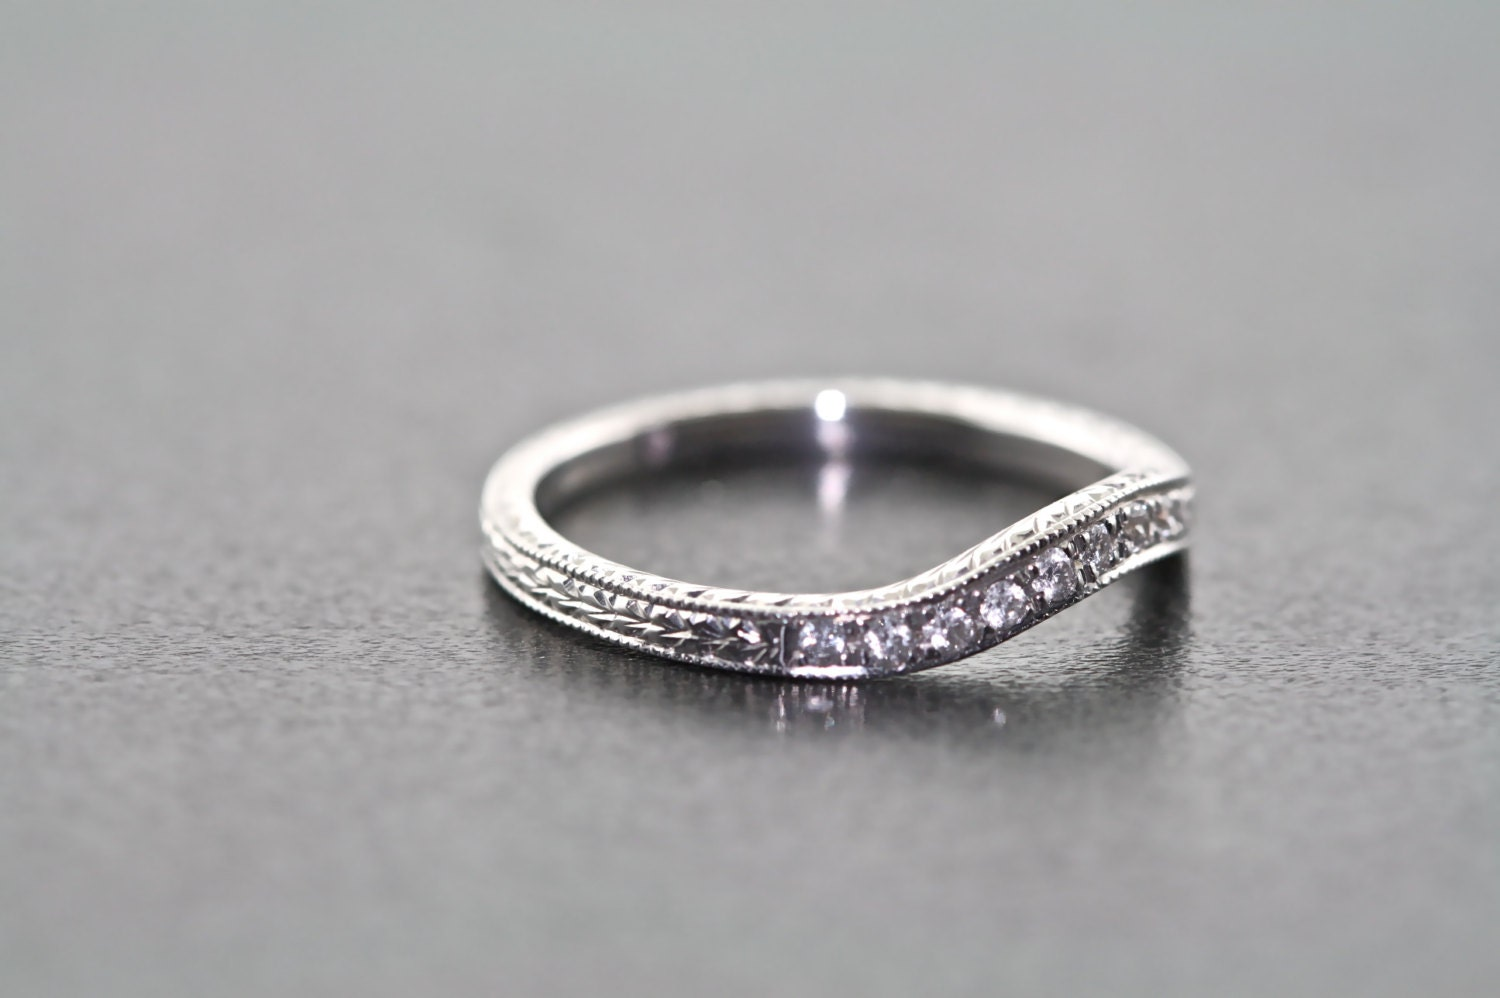 18kt white gold hand engraved estate style curved wedding band